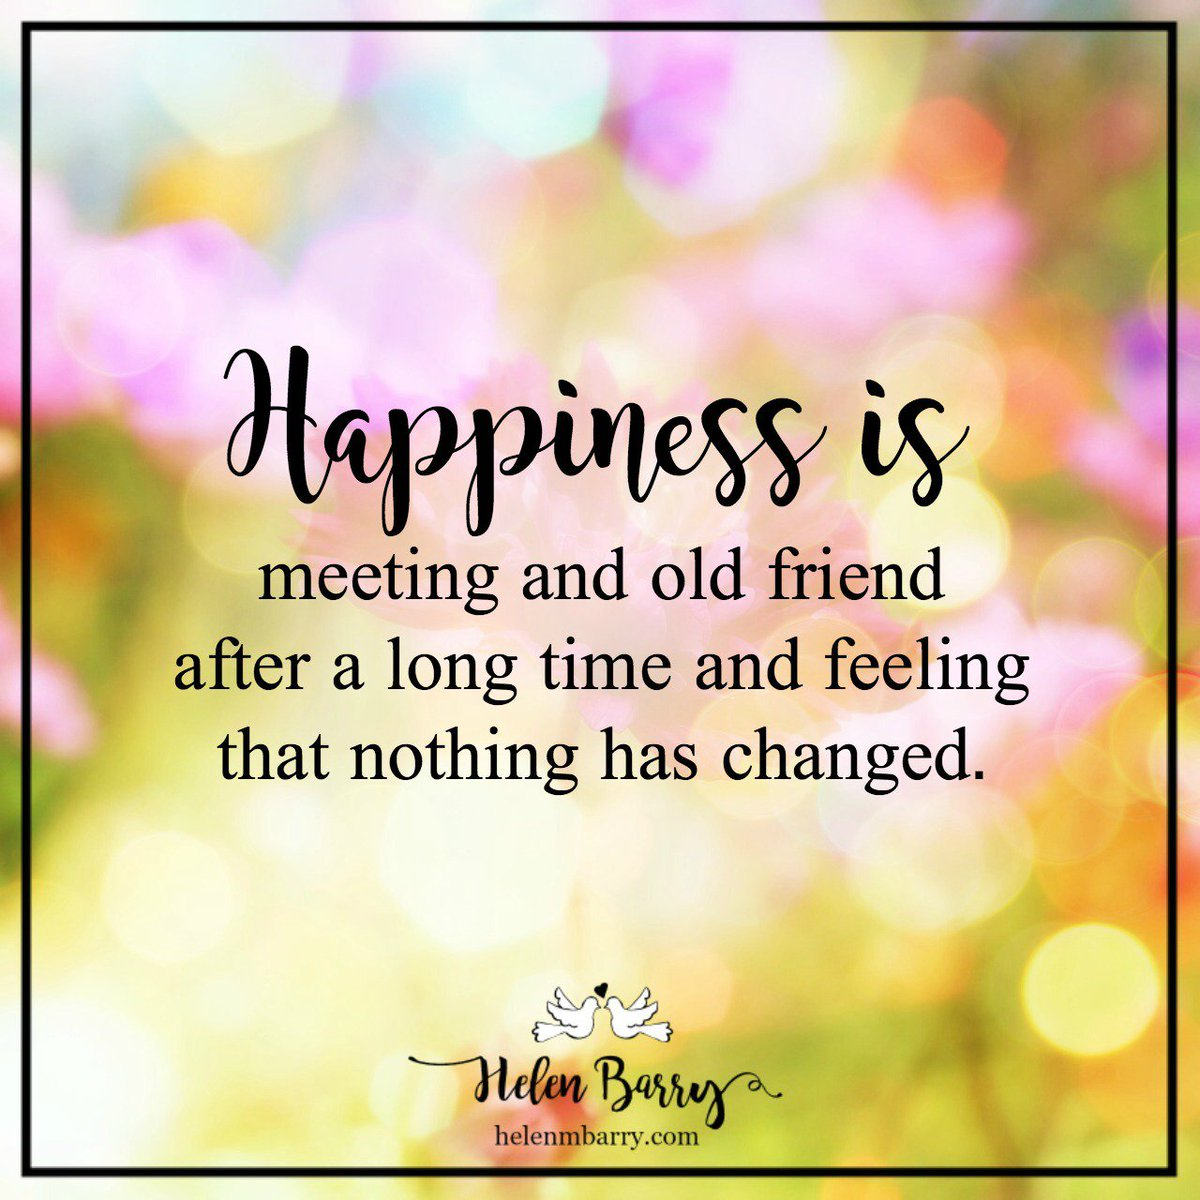 Happiness is meeting someone after a long time